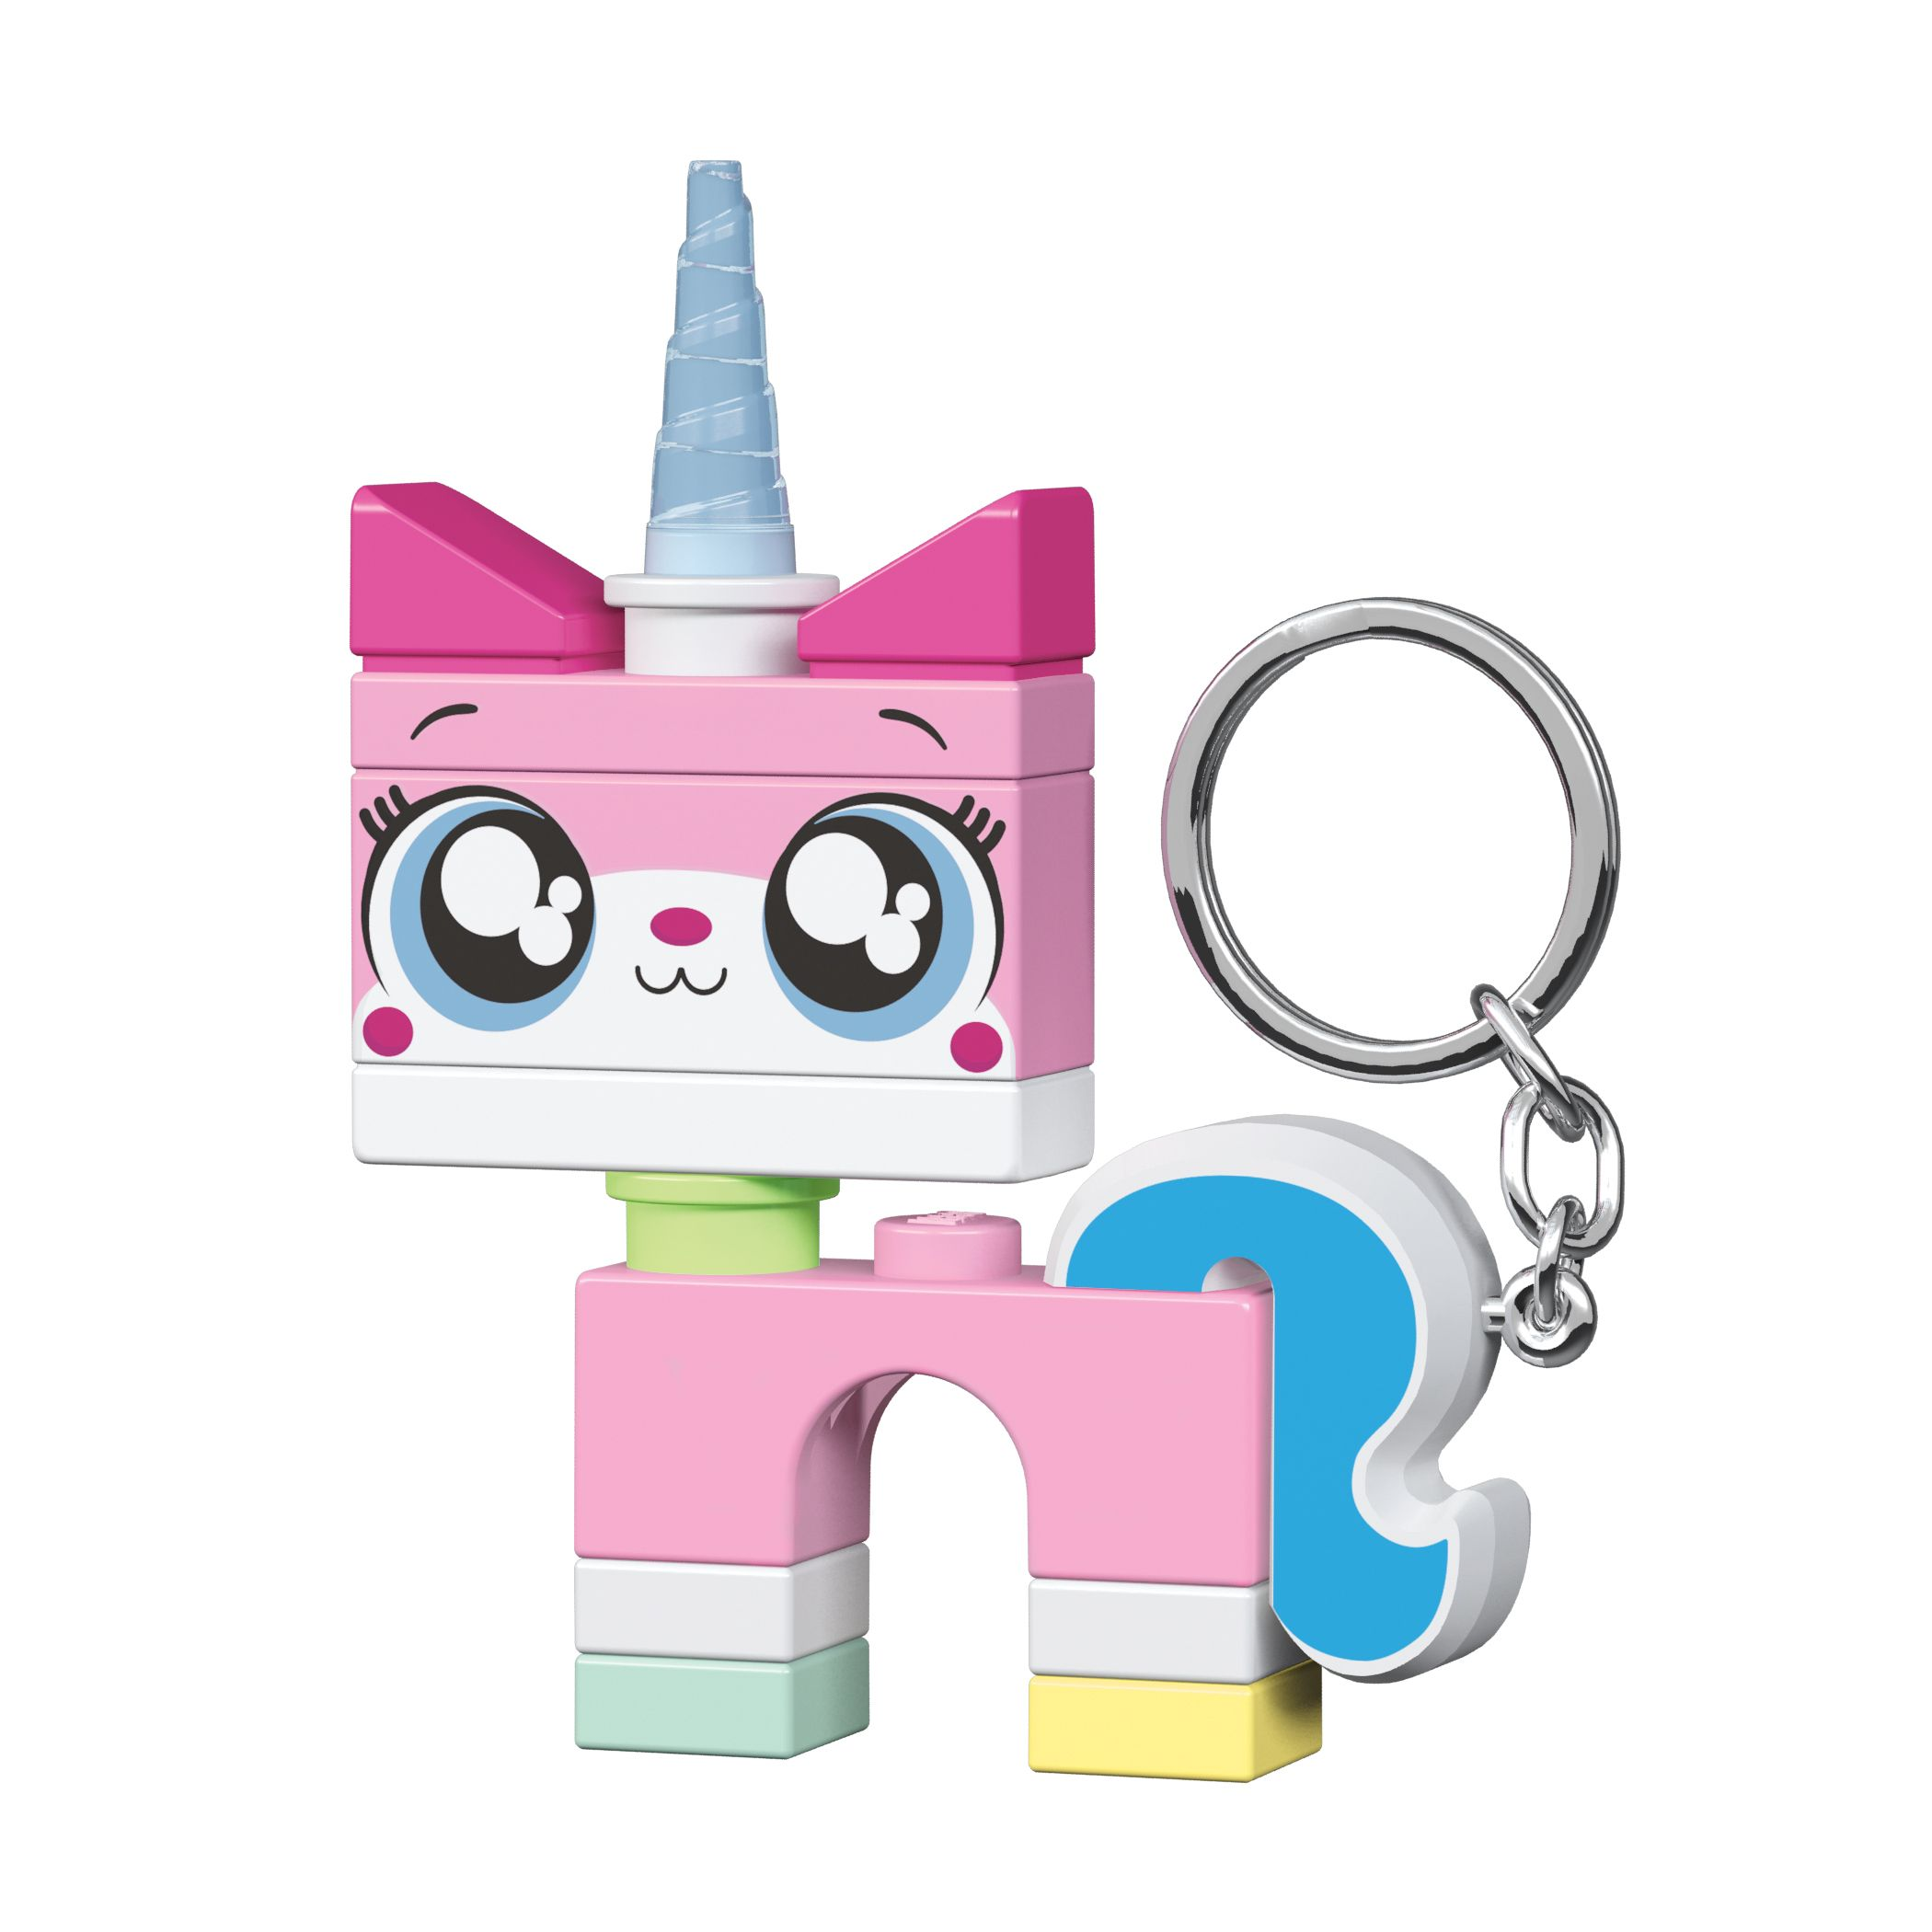 LEGO Gear 5005741 THE LEGO® MOVIE 2™ Einhorn-Kitty-Schlüssellicht